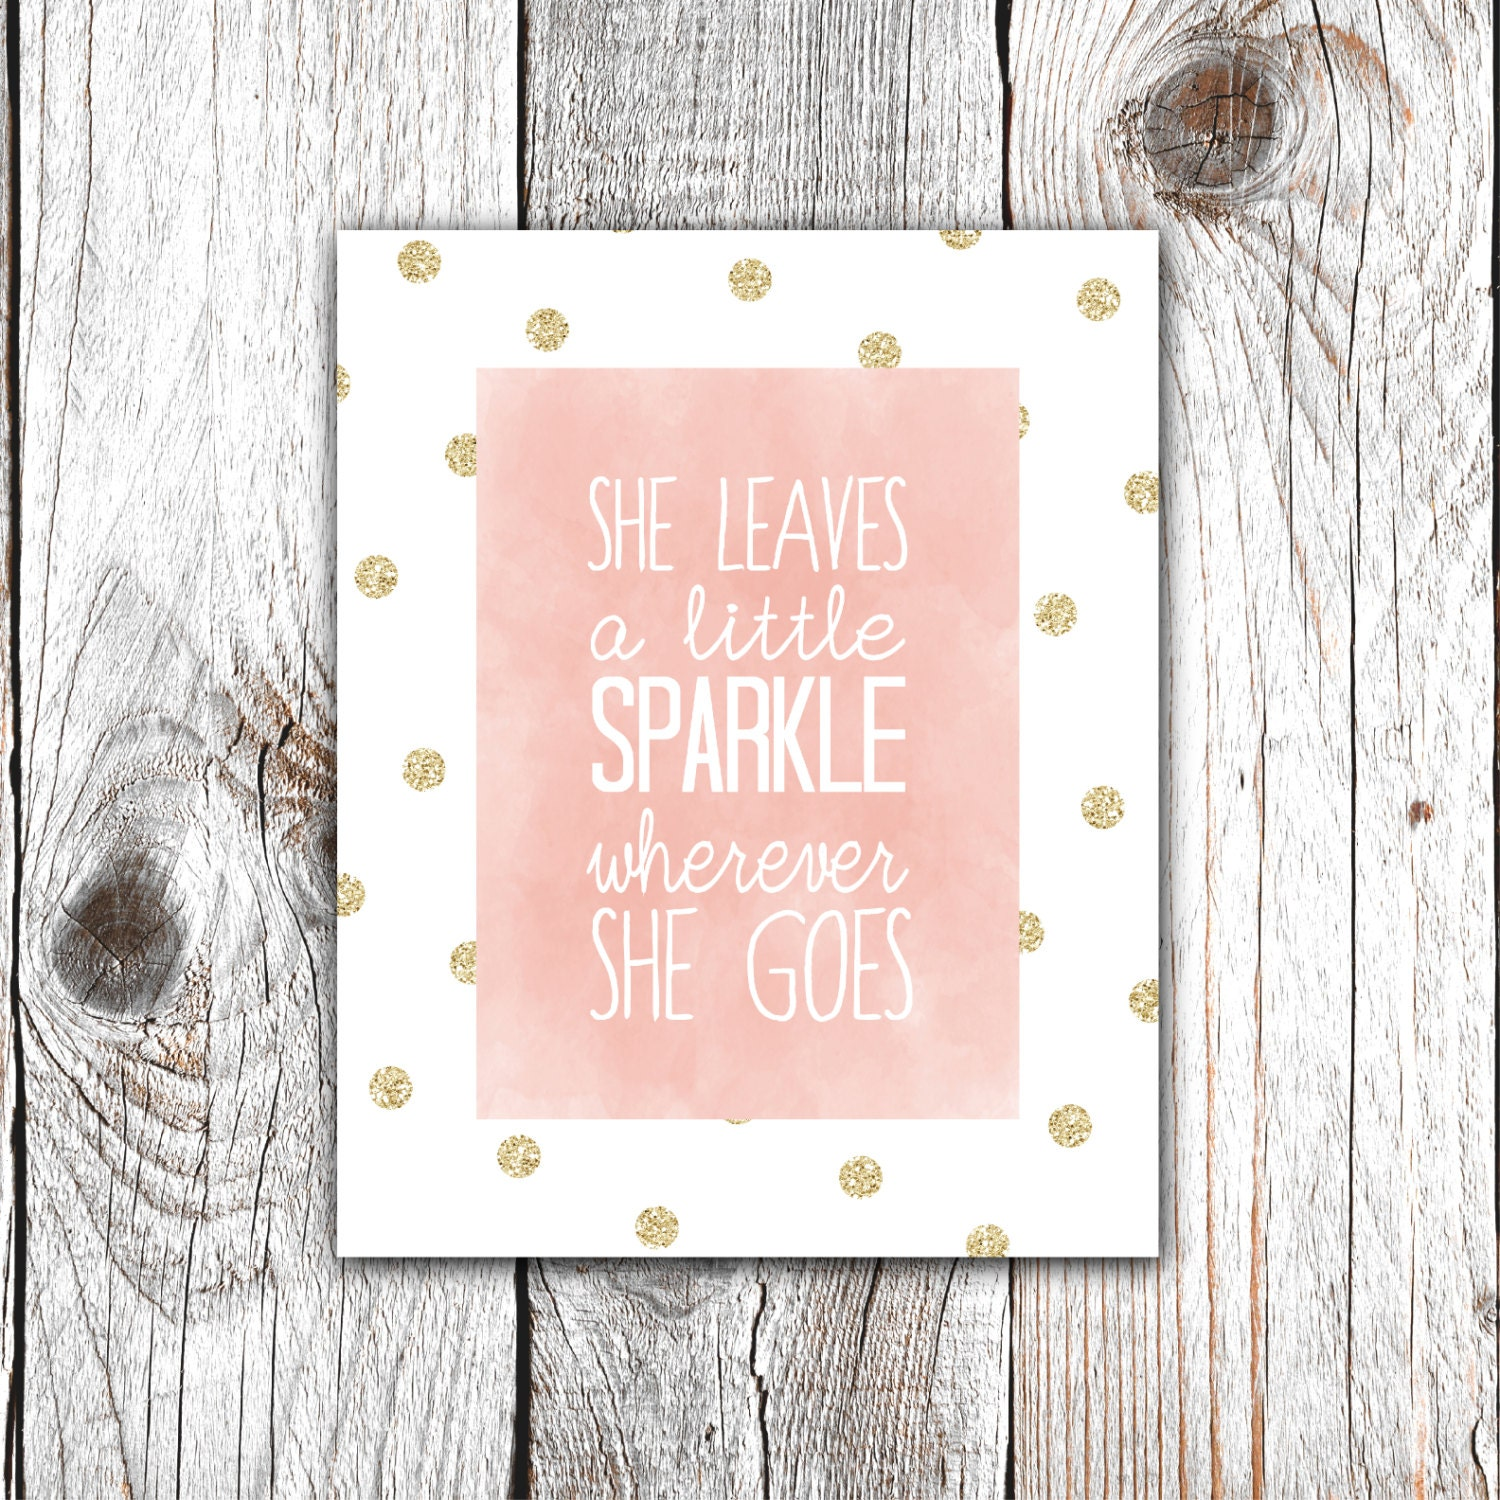 graphic relating to She Leaves a Little Sparkle Wherever She Goes Free Printable identify Kid Female Printable Obtain She Leaves a Small Sparkle